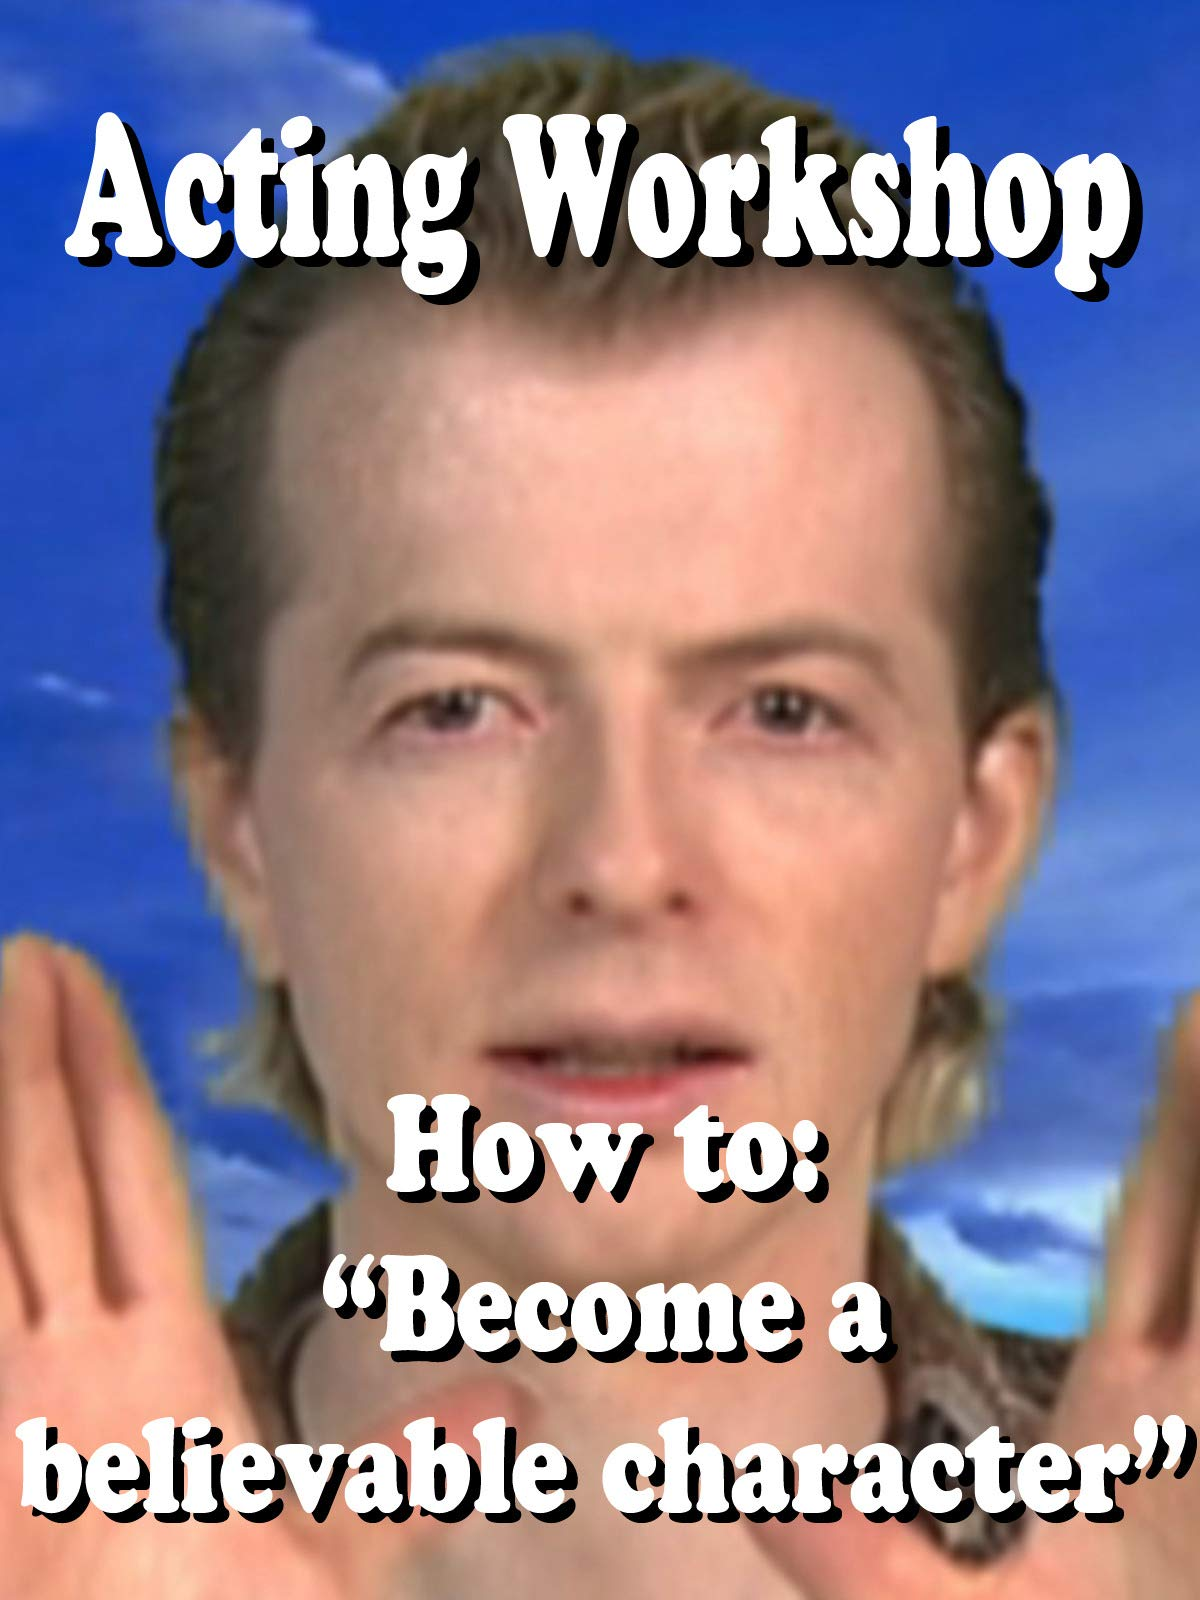 "Acting Workshop: How to become a believable character""."